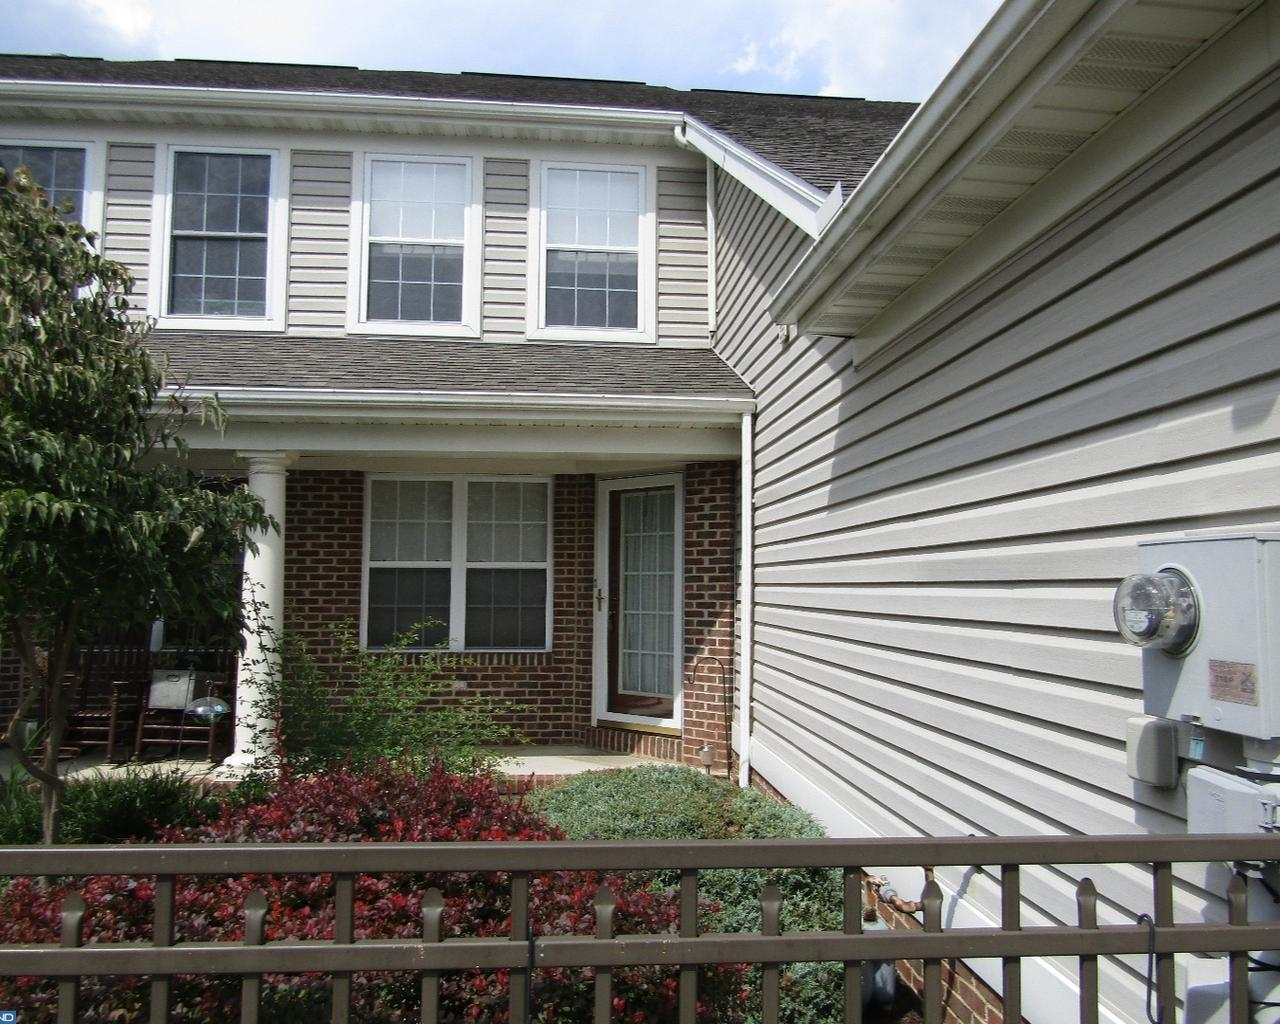 Property for sale at 216 OAK HILL LN, Wyomissing,  PA 19610